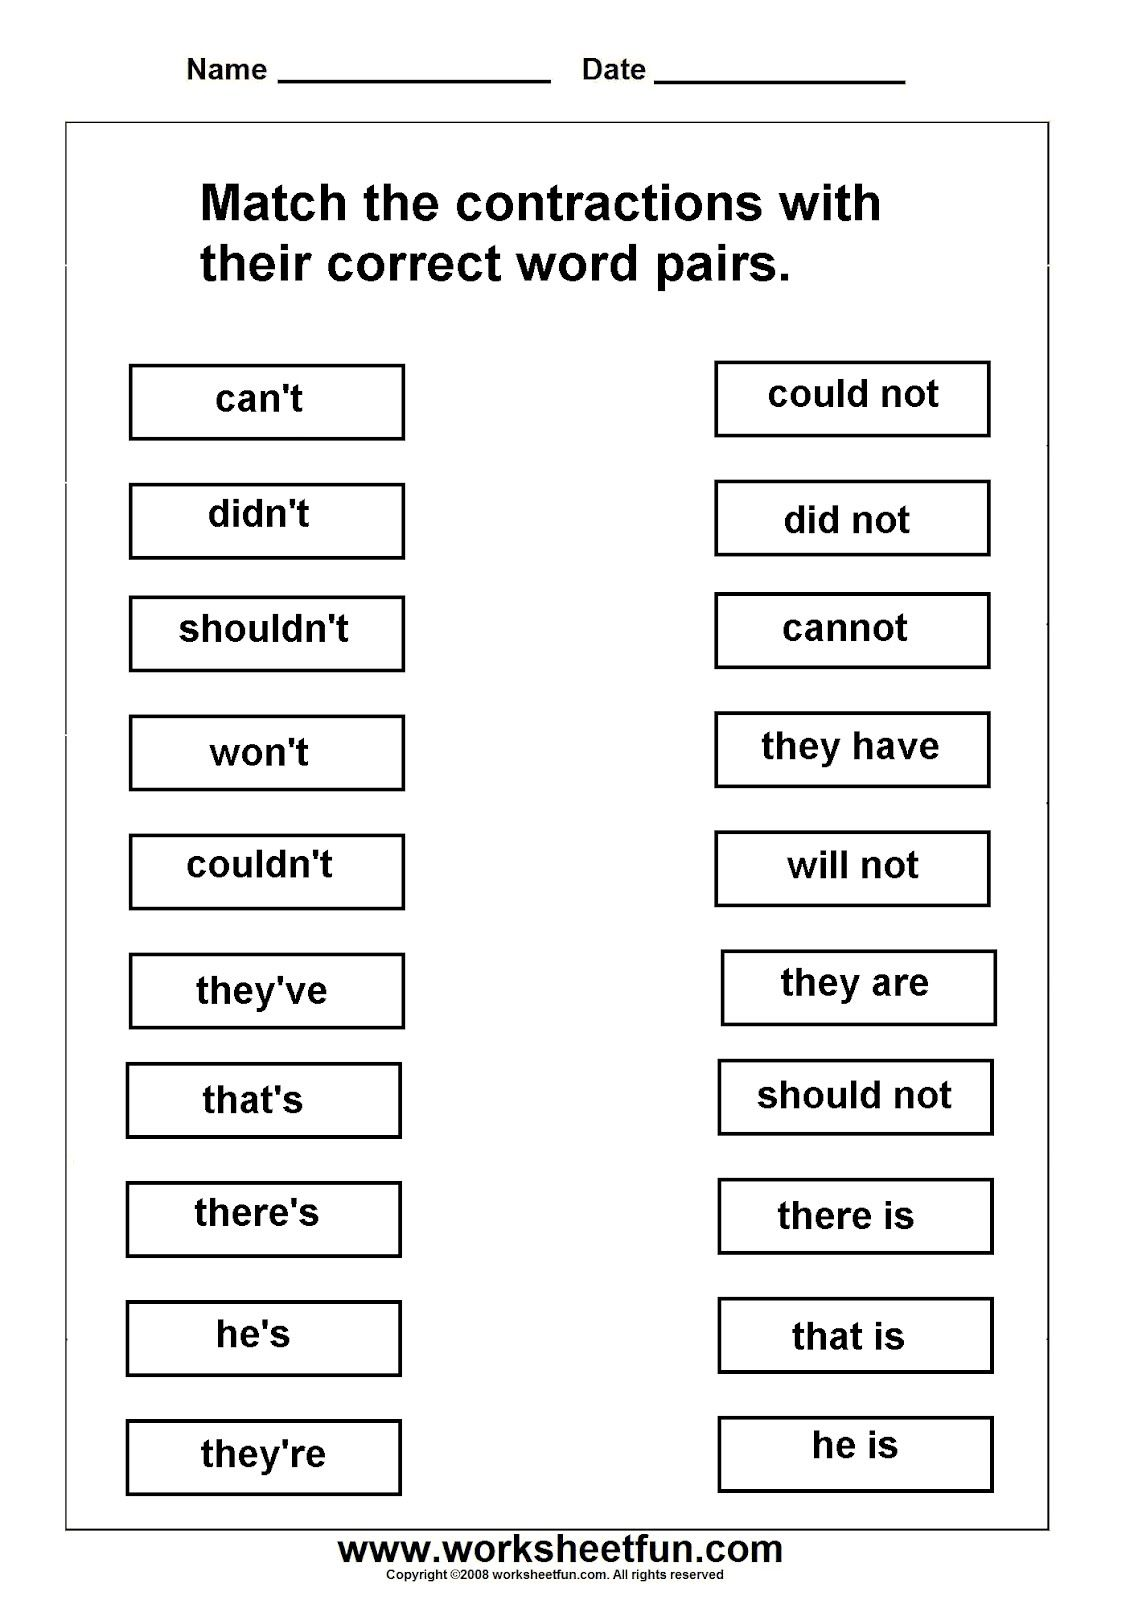 Worksheets Free Printable Contraction Worksheets contractions worksheets can t didn shouldn won couldn they ve